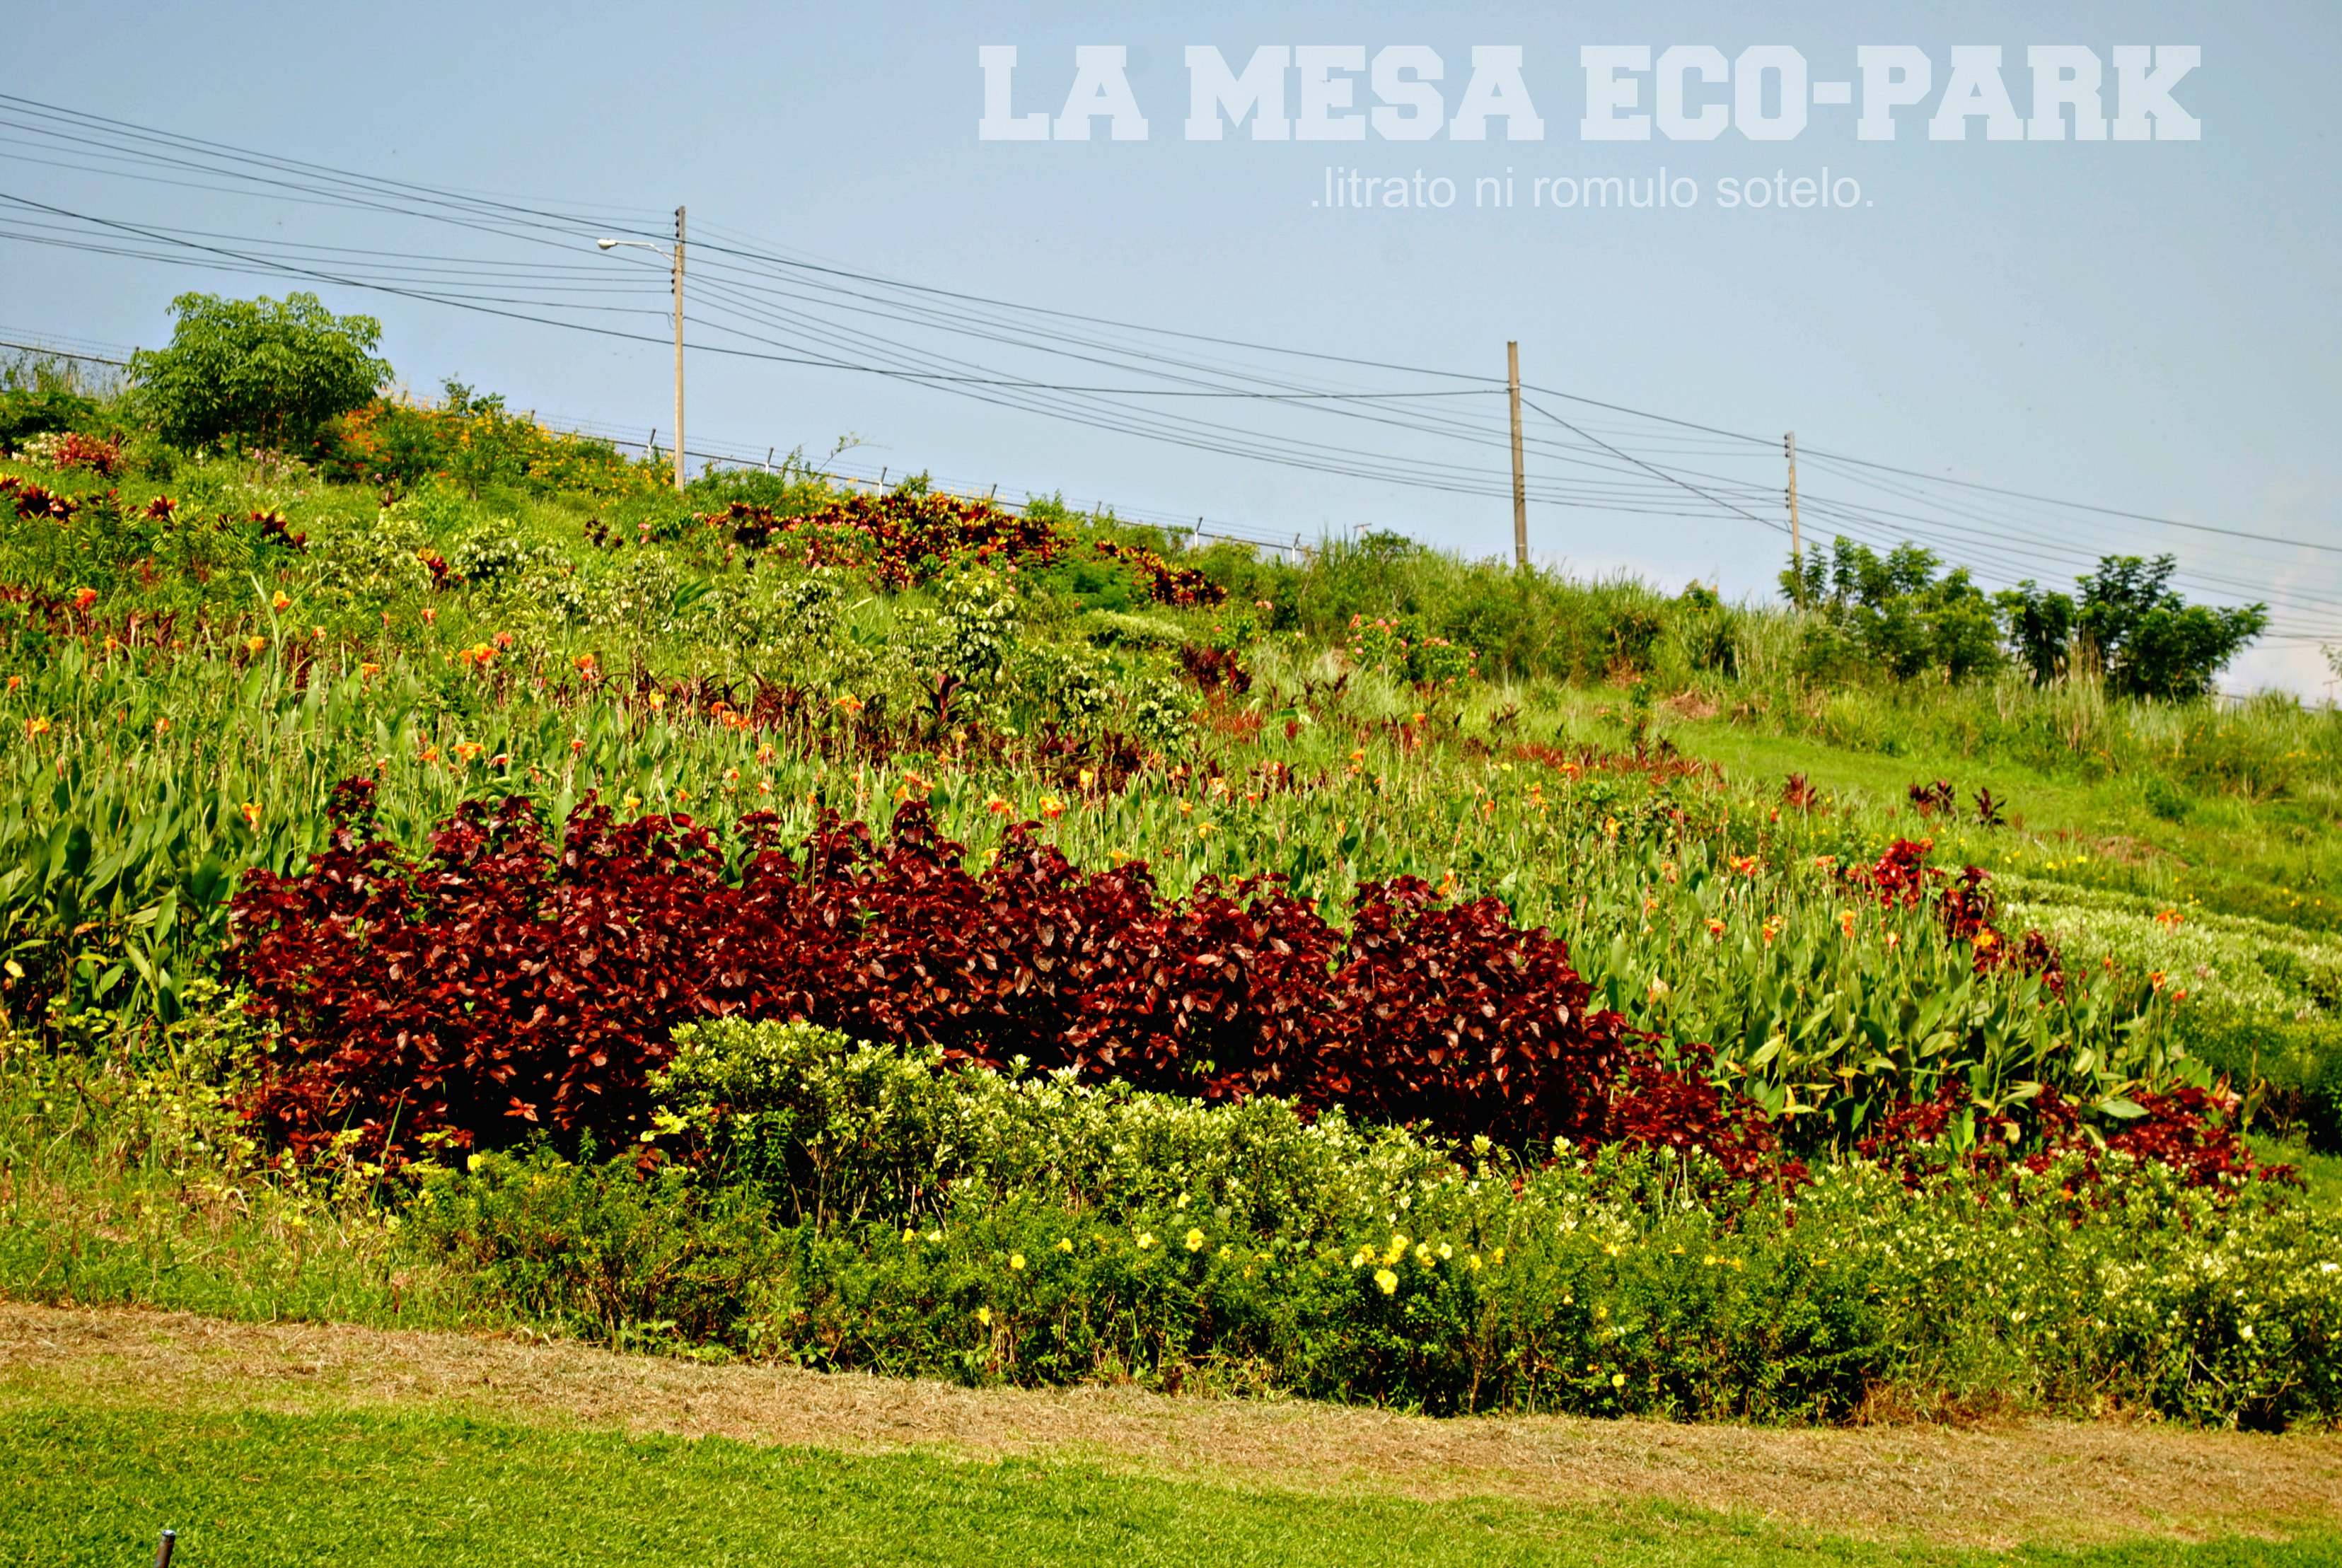 La mesa eco park quezon city ph no juan is an island - La mesa eco park swimming pool photos ...